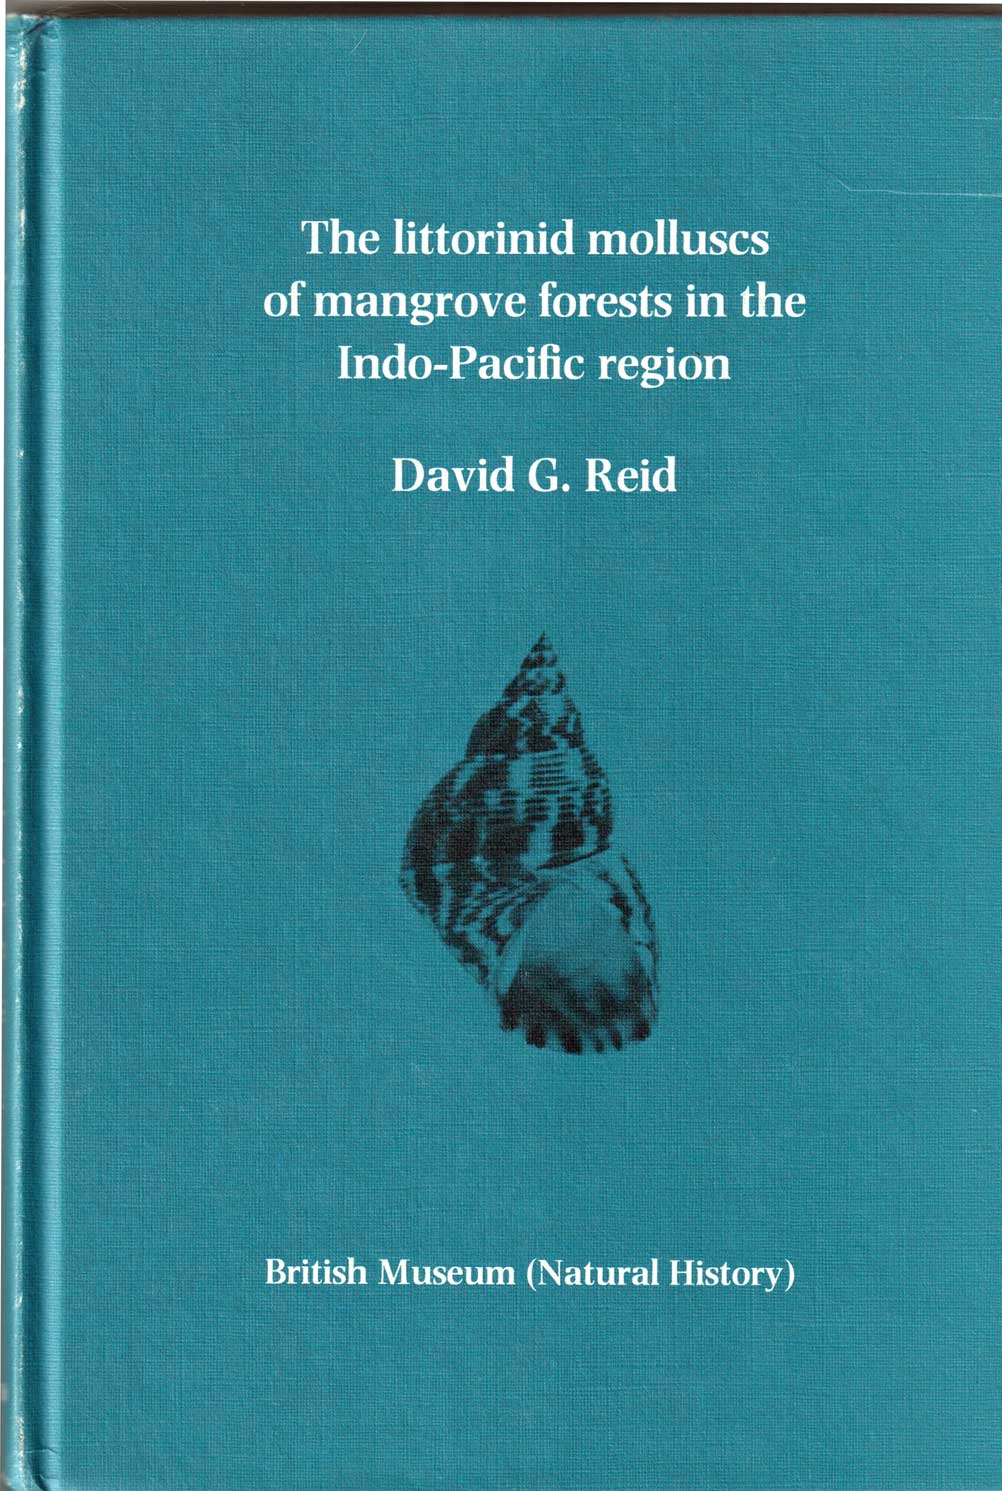 The Littorinid Molluscs of Mangrove Forests in the Indo-Pacific Region